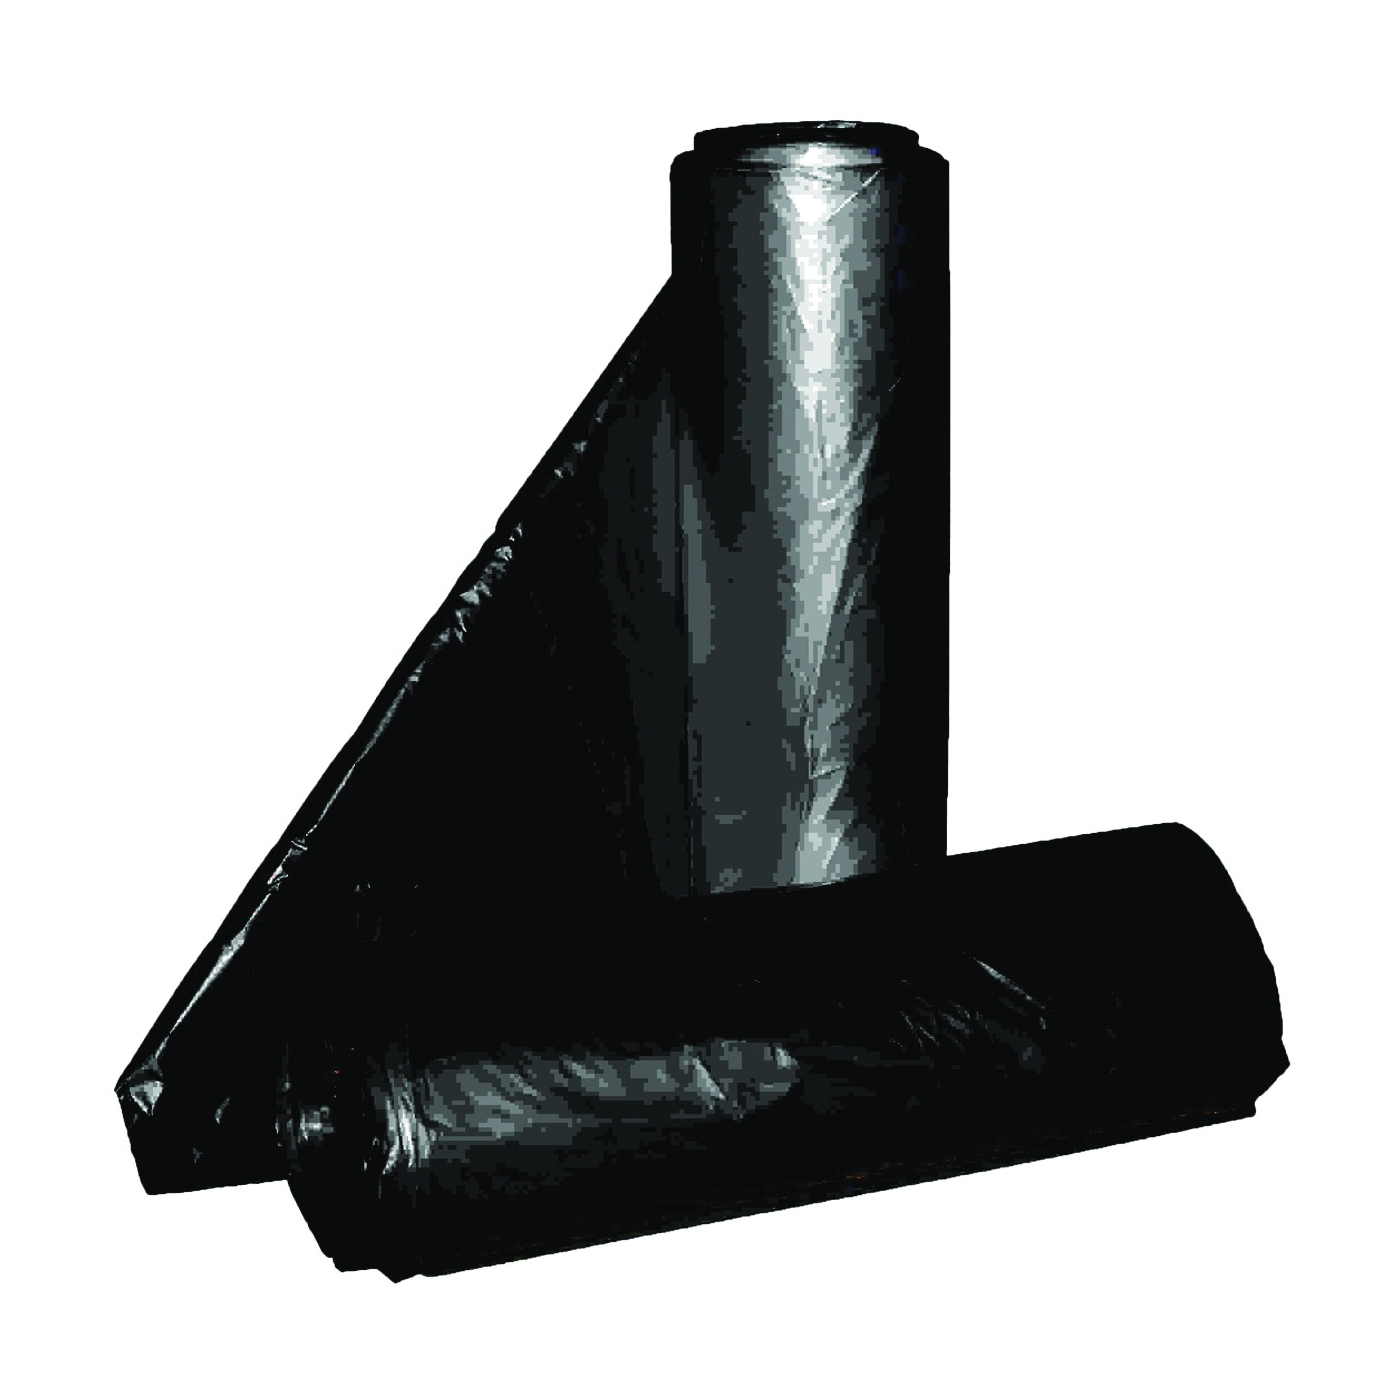 Picture of ALUF PLASTICS RL Series RL-2432H Can Liner, 12 to 16 gal Capacity, Repro Blend, Black